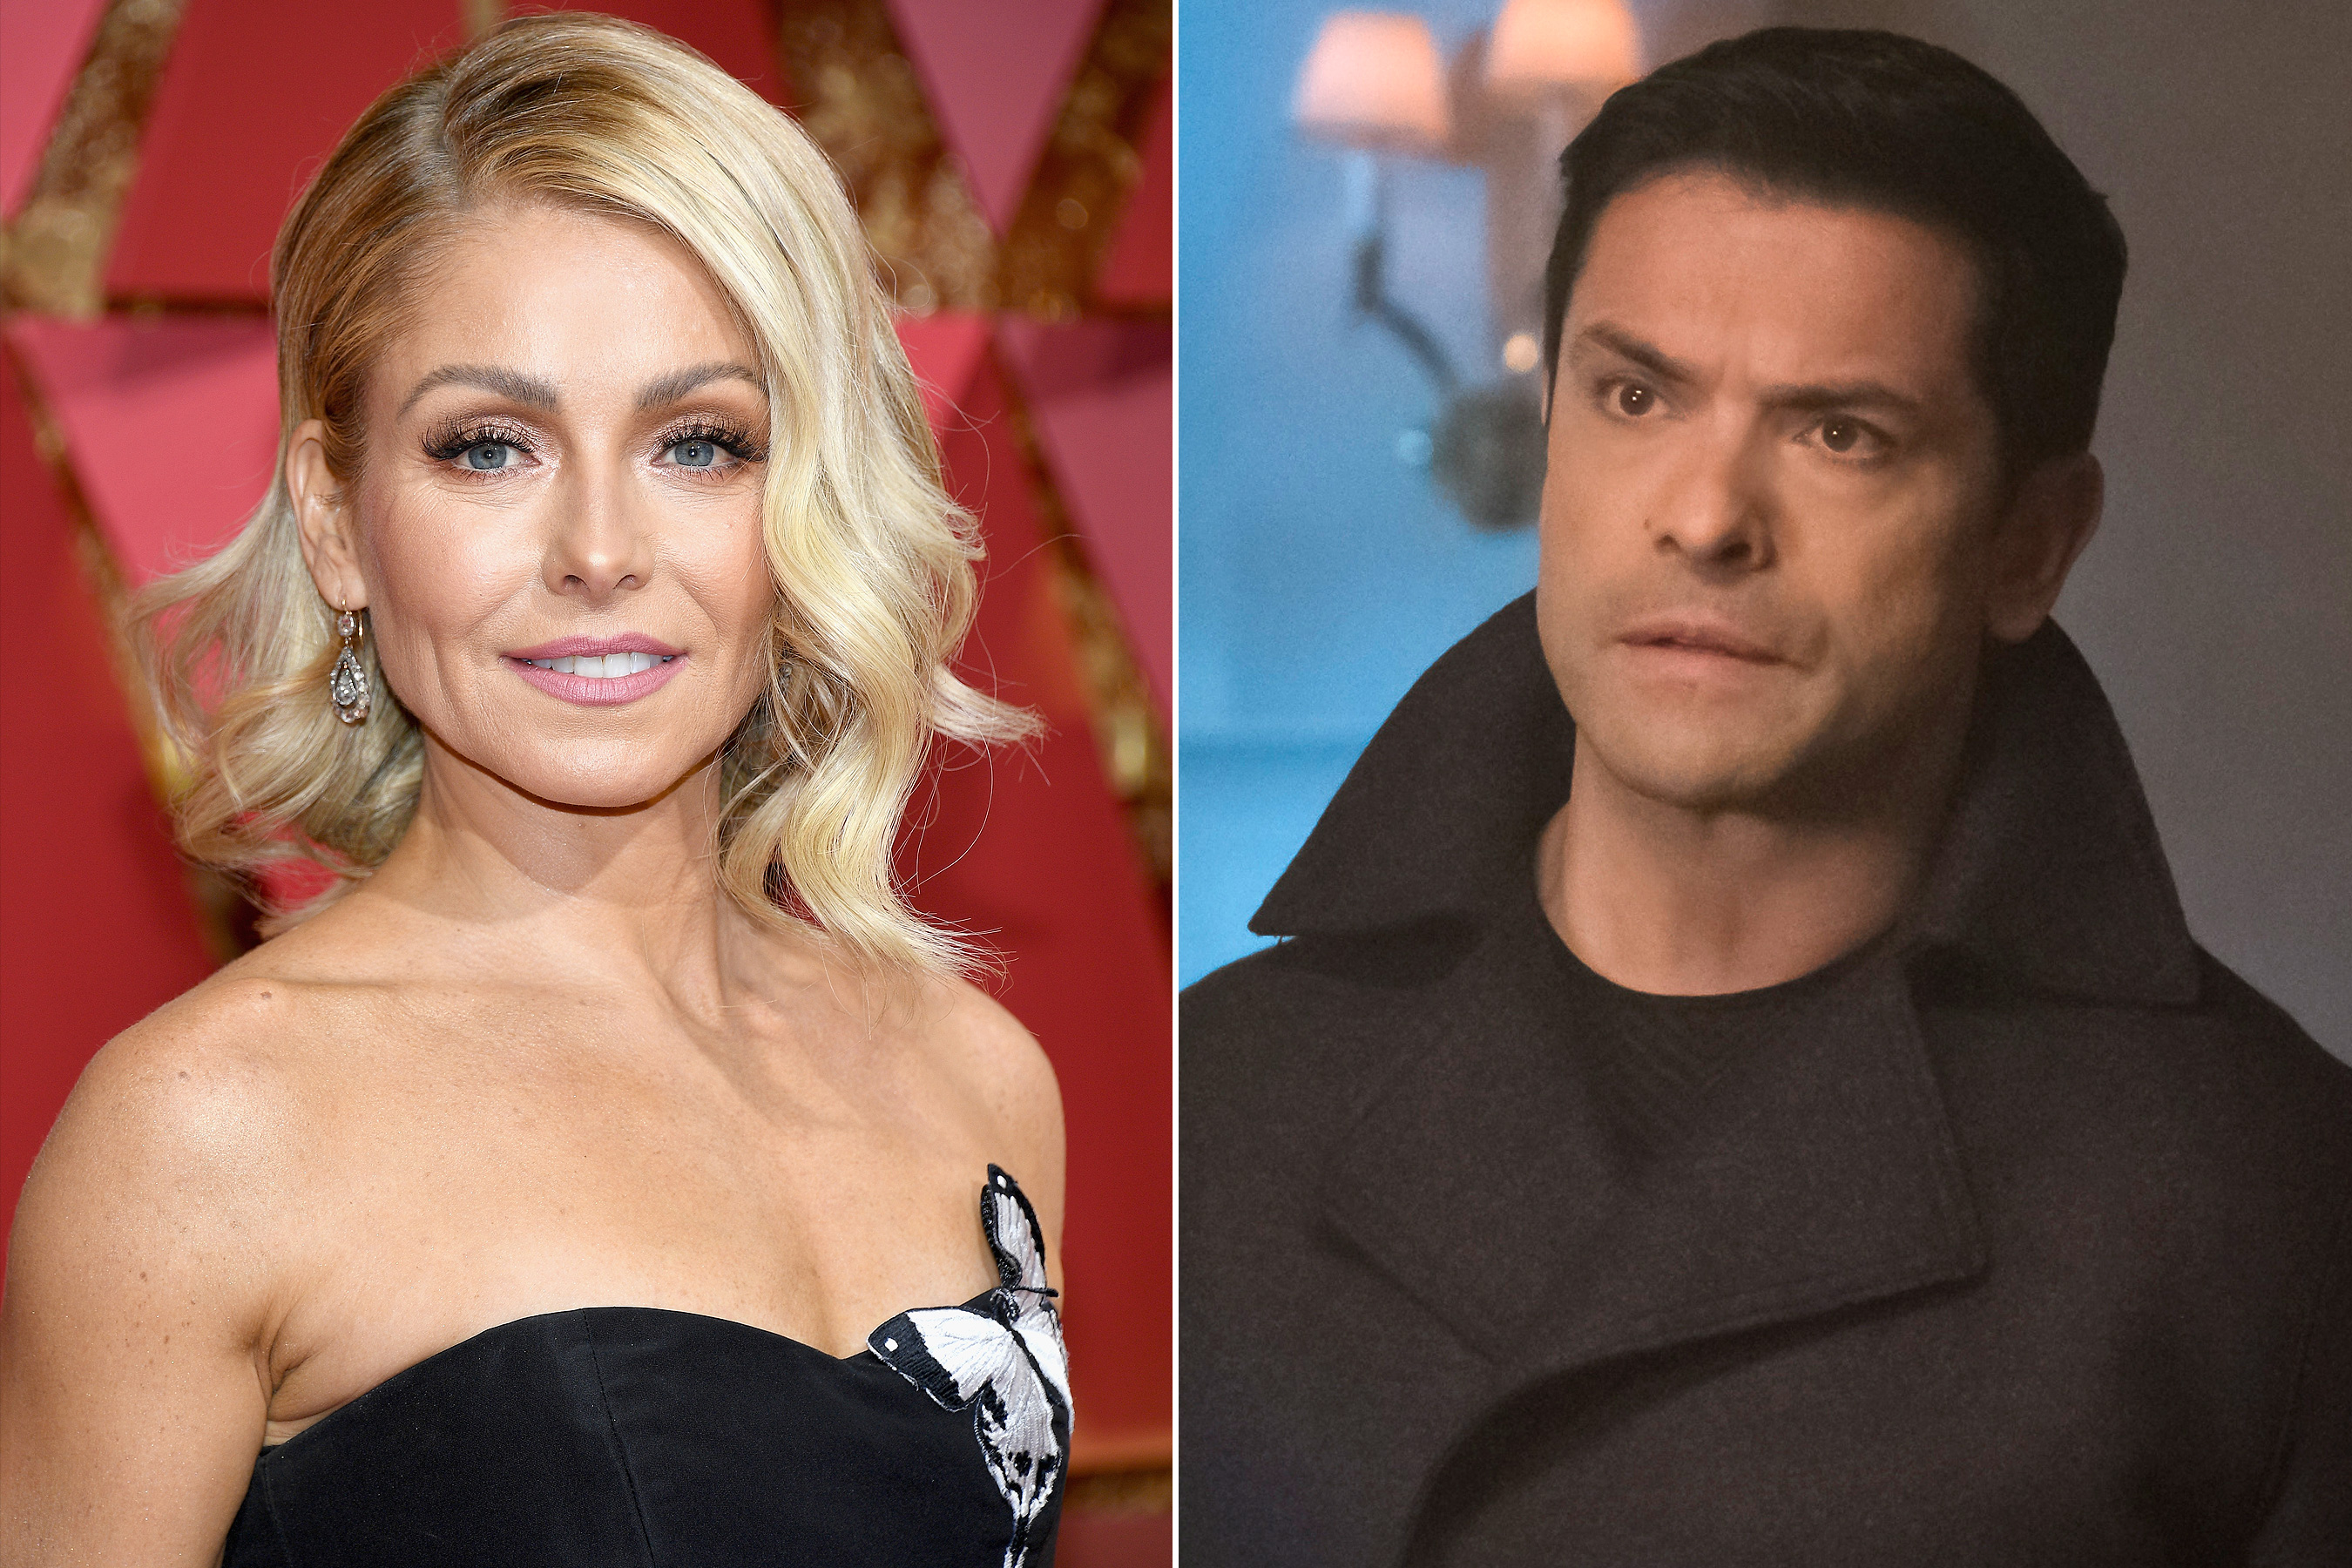 blogcertified-Kelly Ripa-to-join-husband-Mark-Consuelos-on-'Riverdale'-as-his-mistress